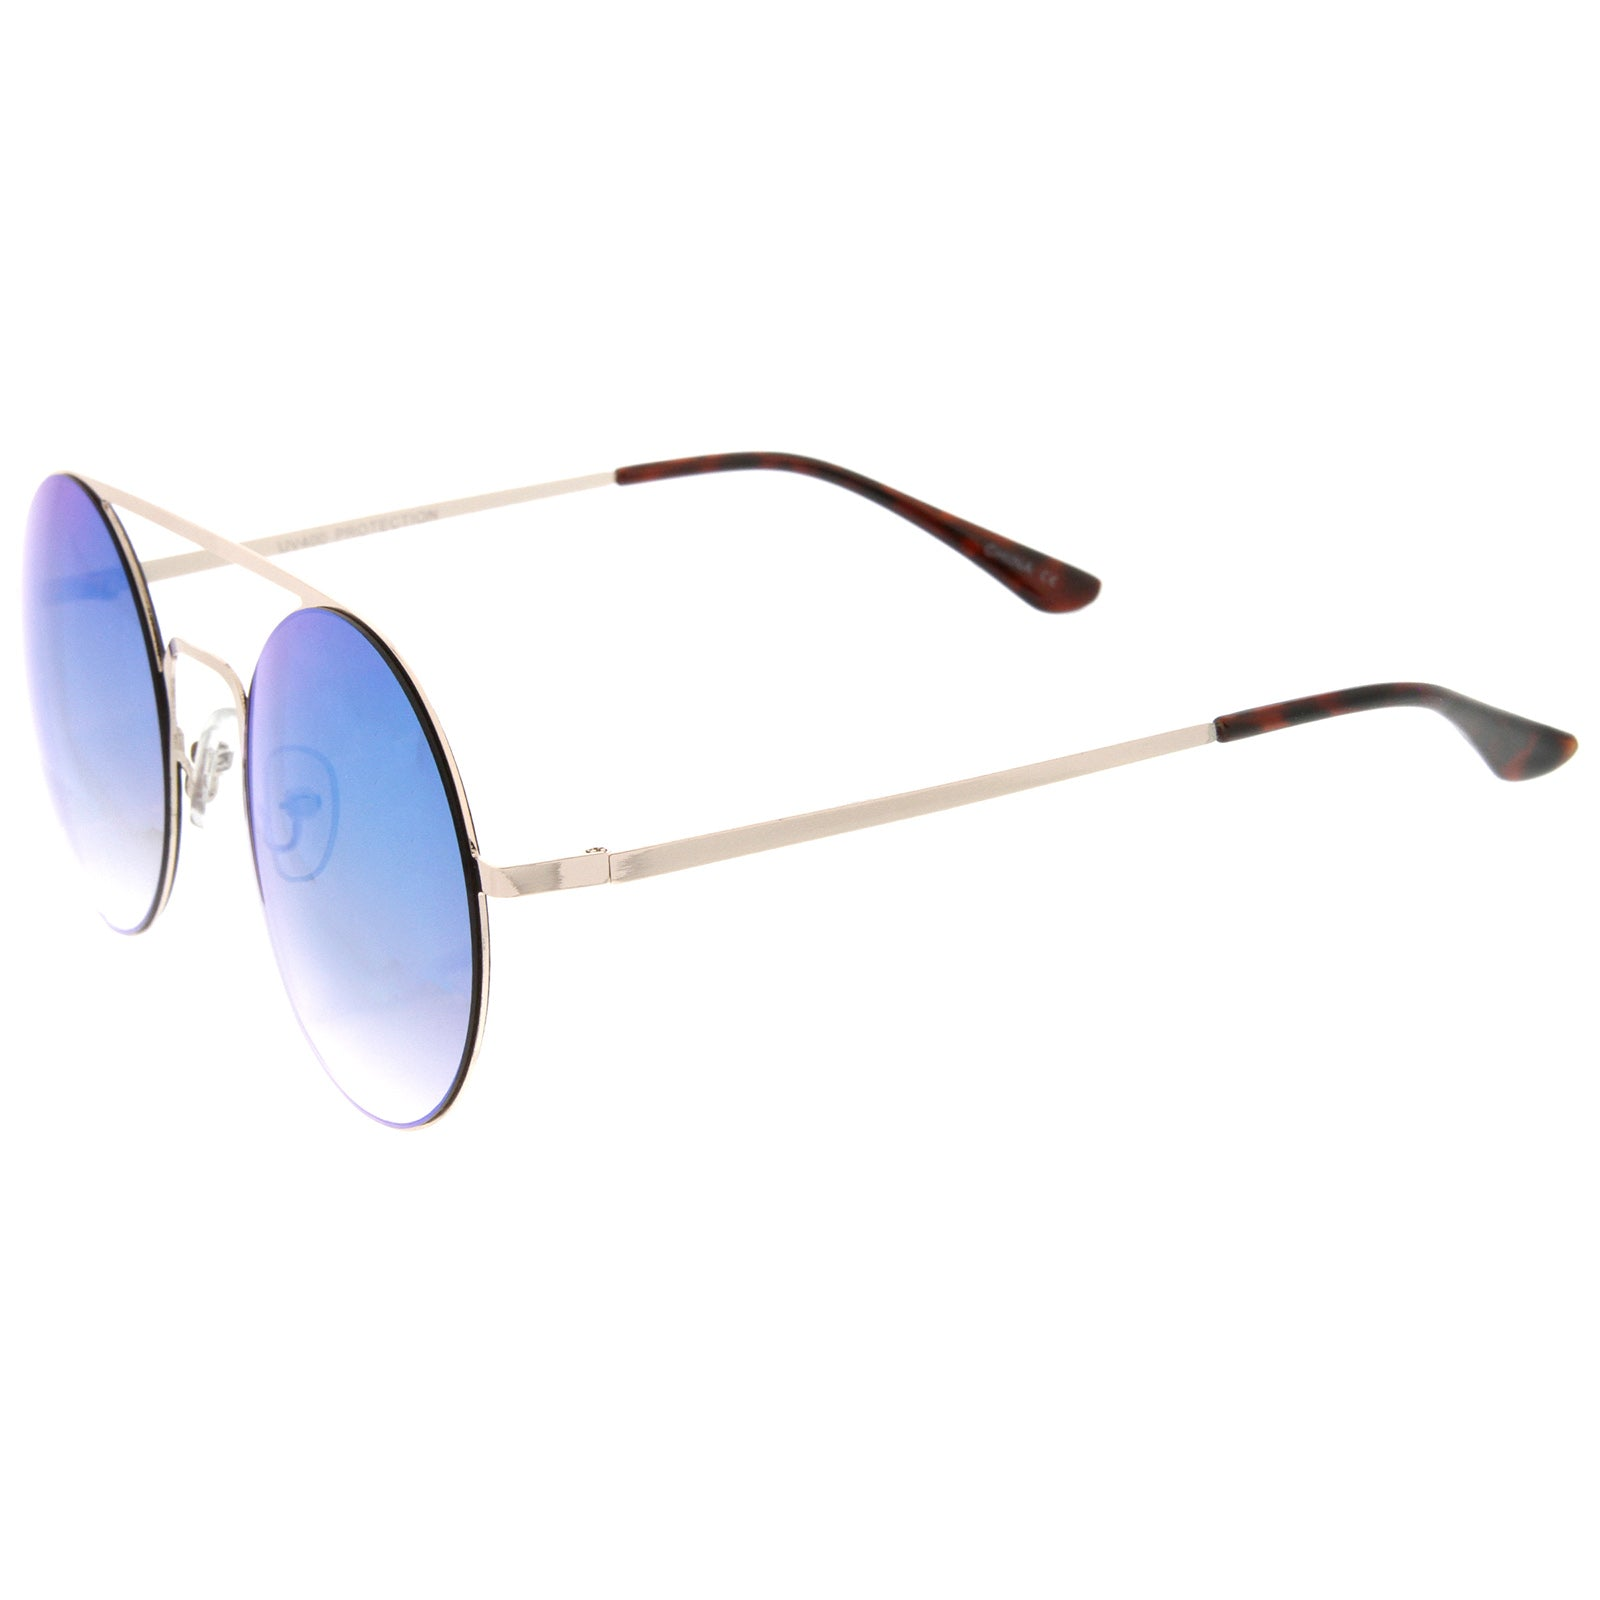 Modern Slim Double Nose Bridge Colored Mirror Flat Lens Round Sunglasses 53mm - sunglass.la - 3